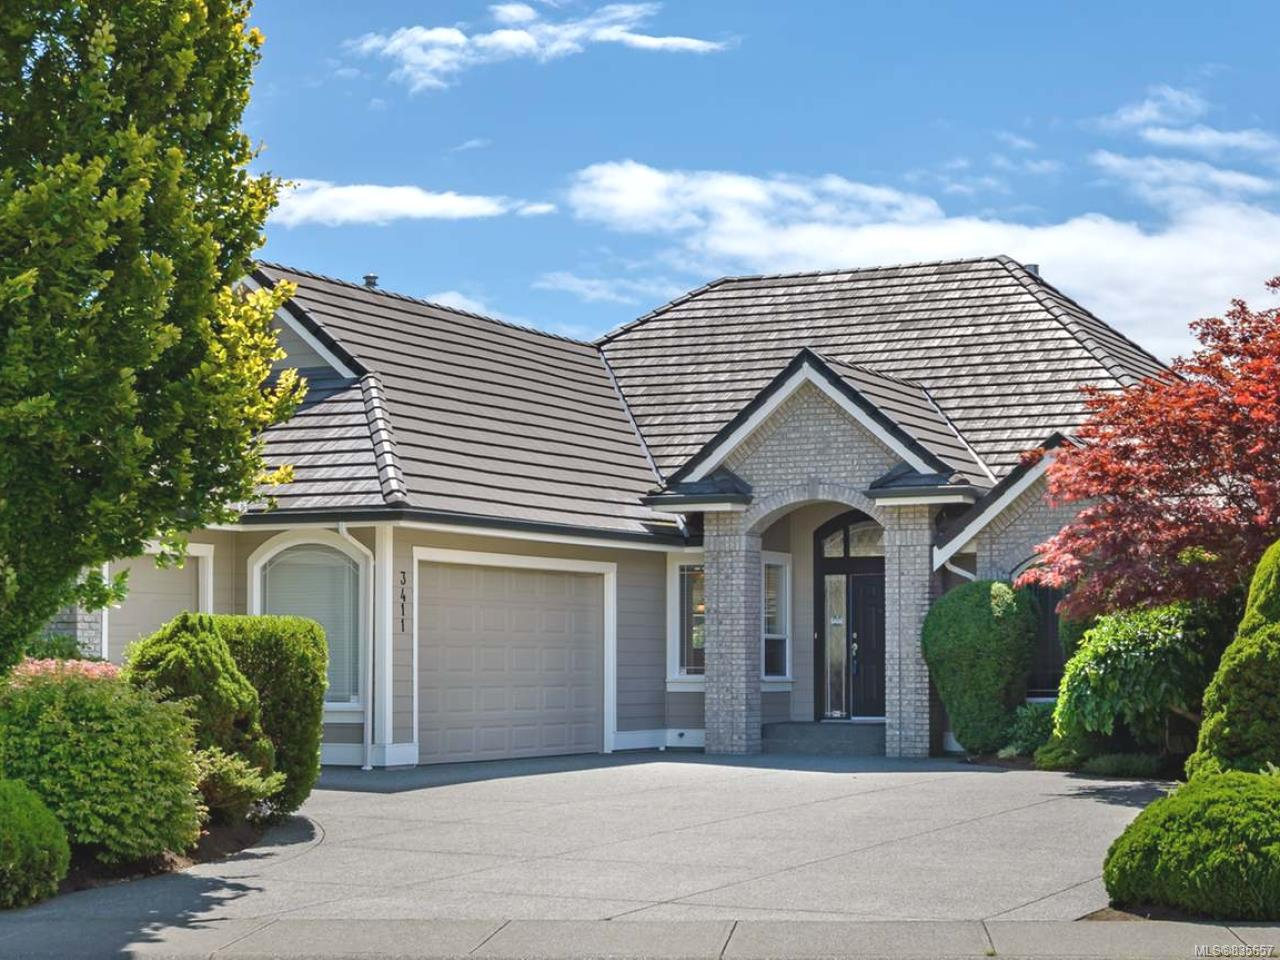 FEATURED LISTING: 3411 Royal Vista Way COURTENAY